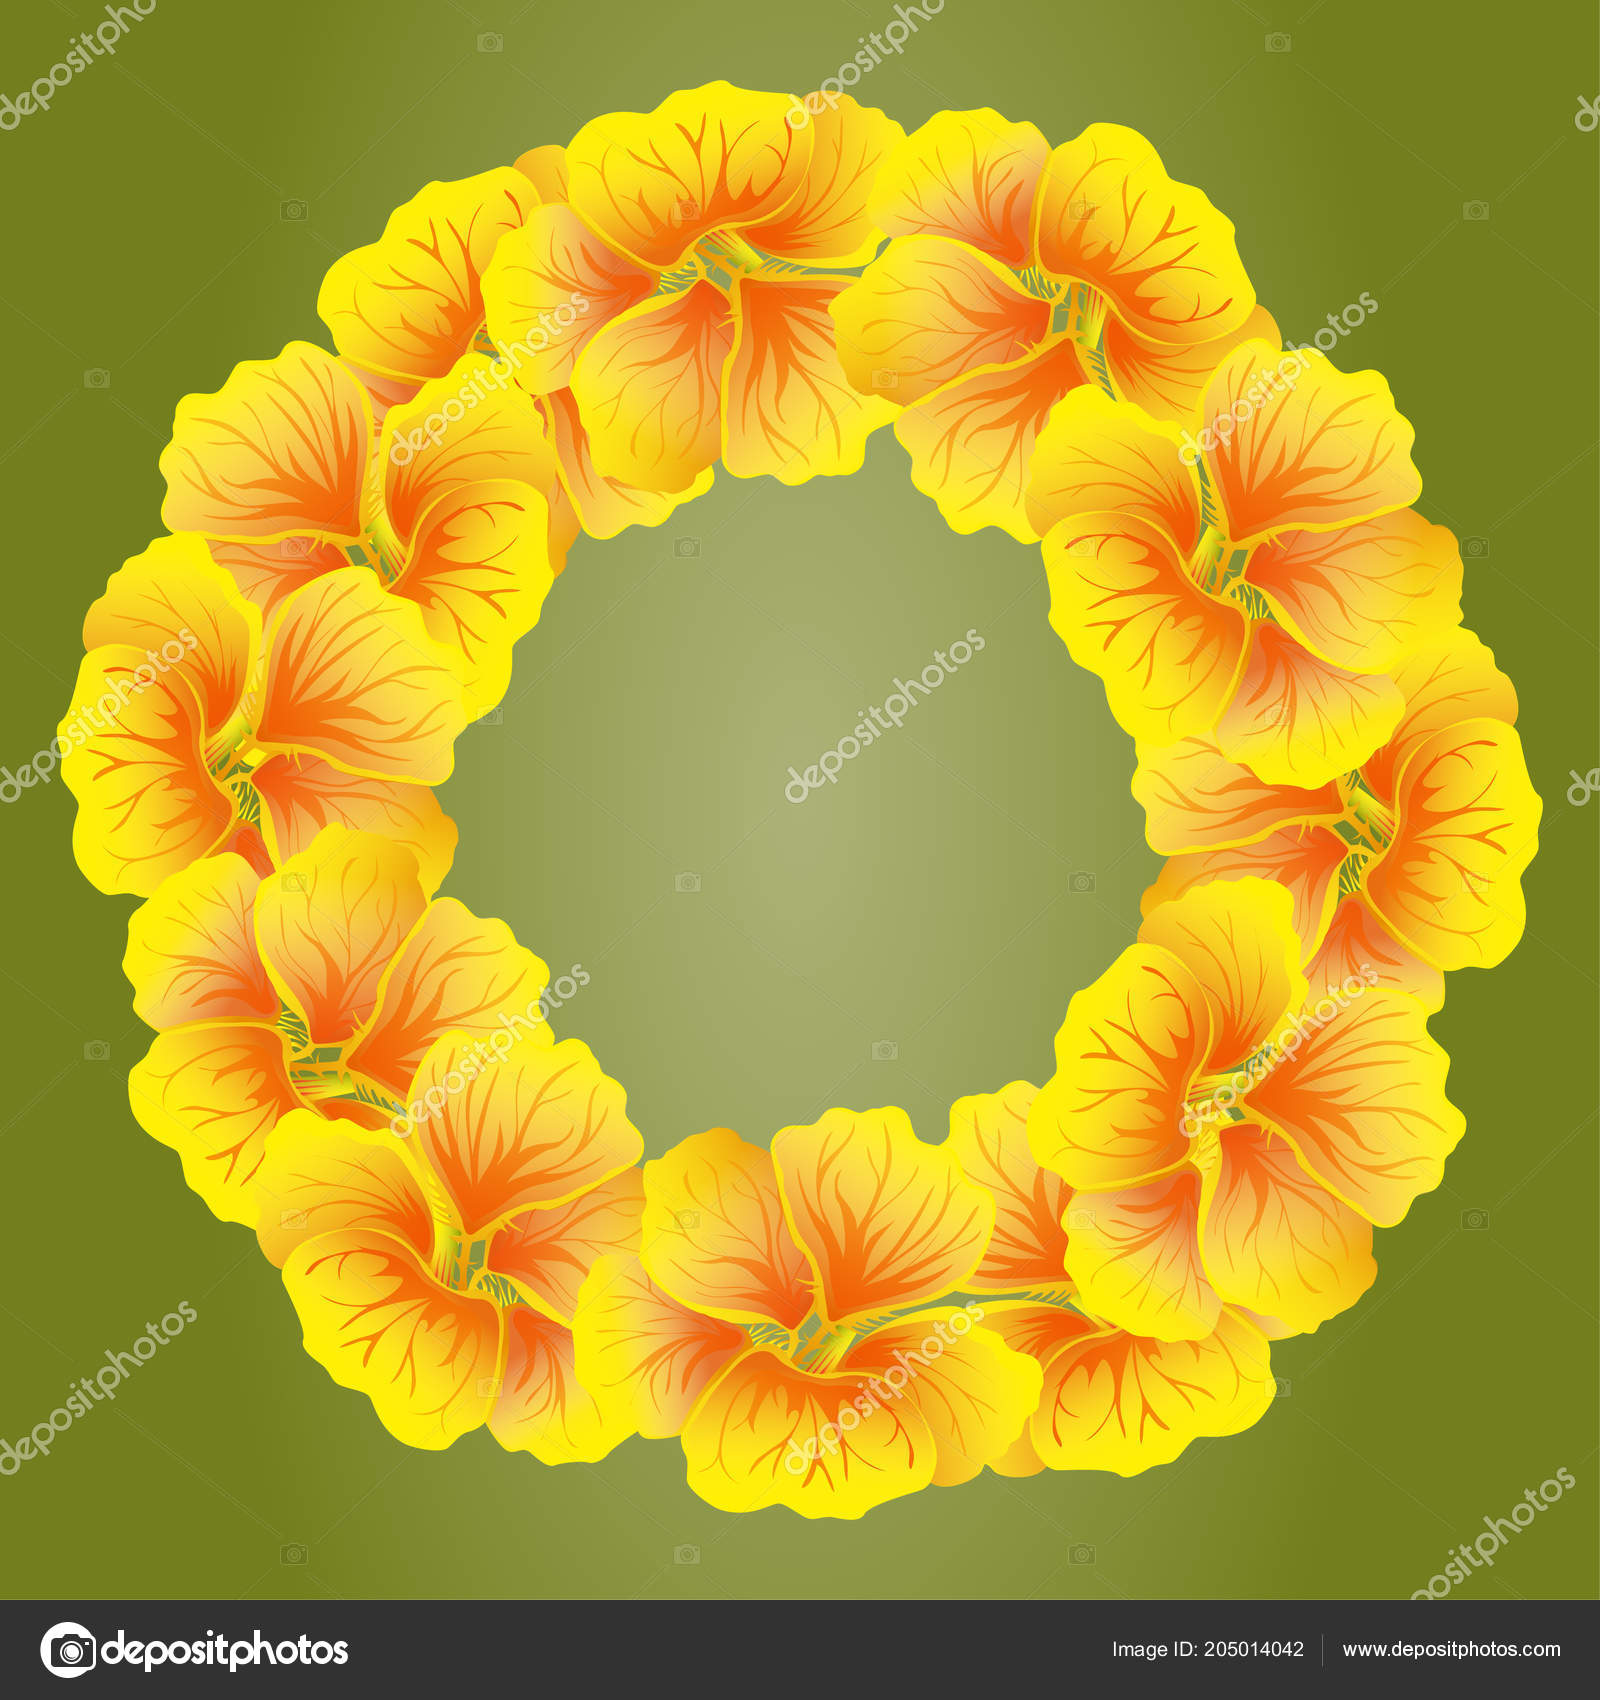 Bright nasturtium wreath wild yellow flowers beautiful floral circle bright nasturtium wreath wild yellow flowers beautiful floral circle isolated stock vector mightylinksfo